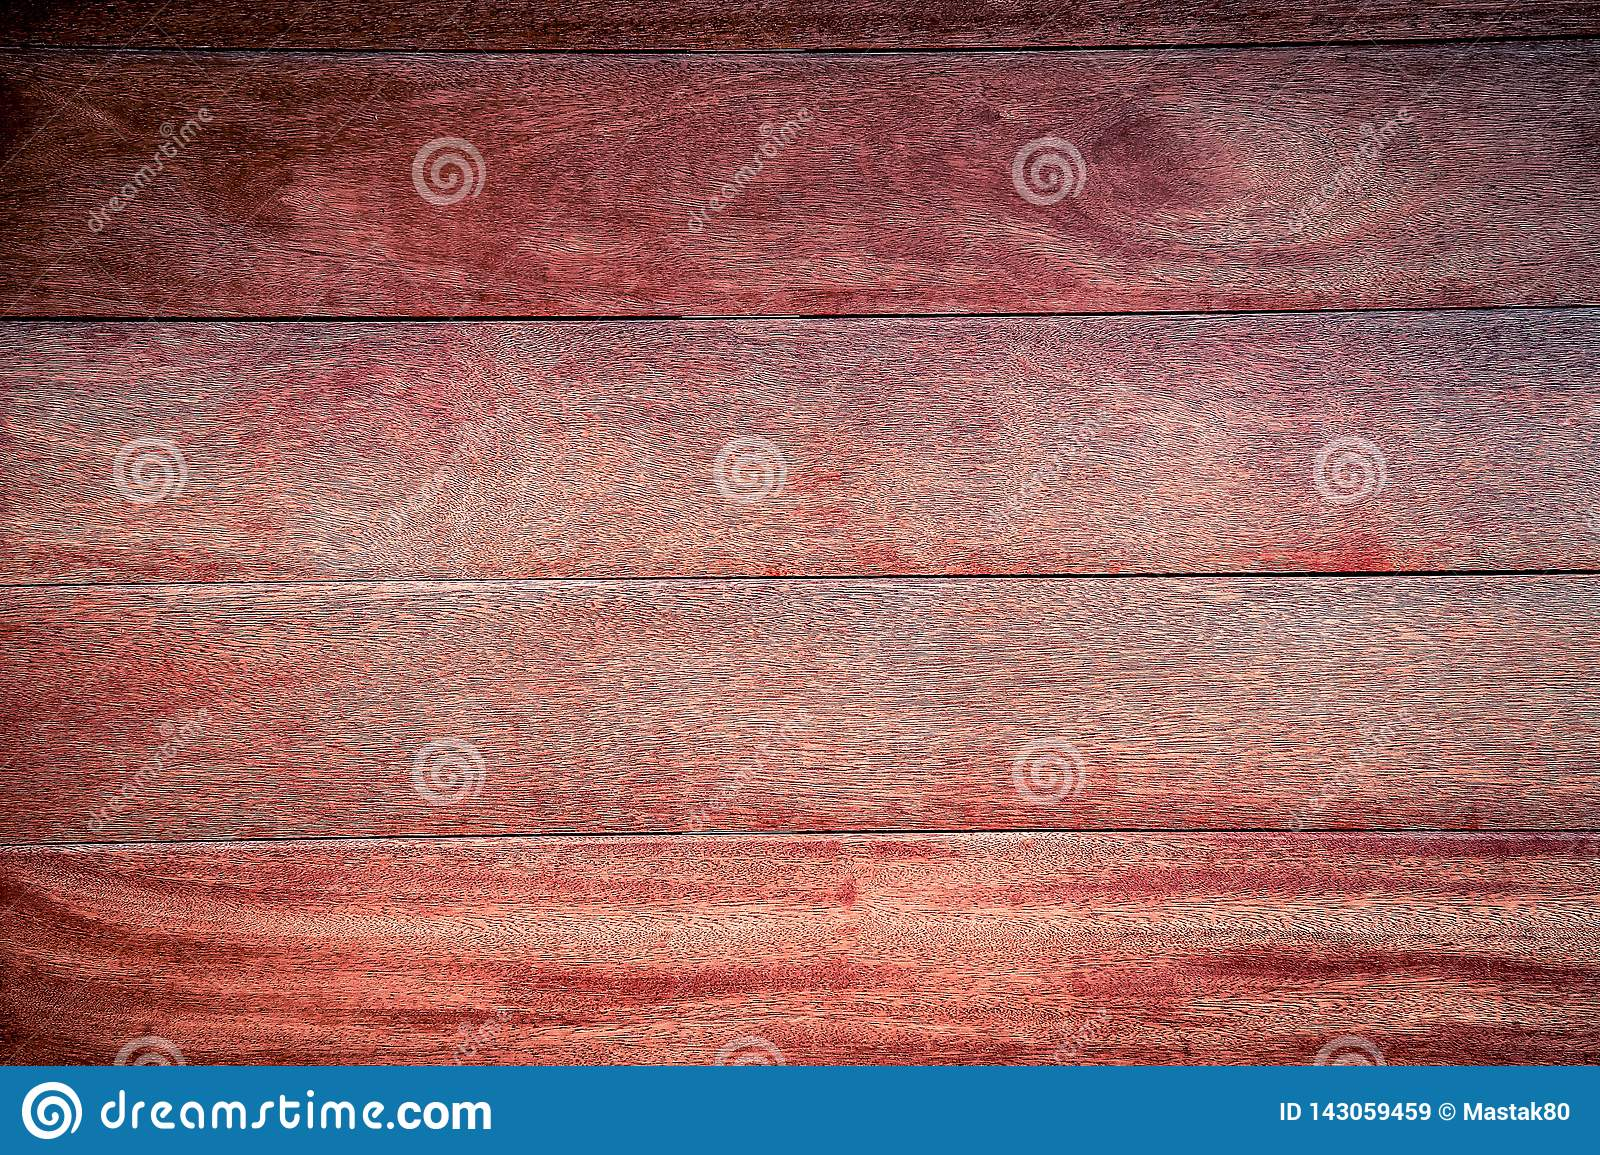 Wooden natural Board to cover the surface of the house in multi-colored color.Texture.Background.